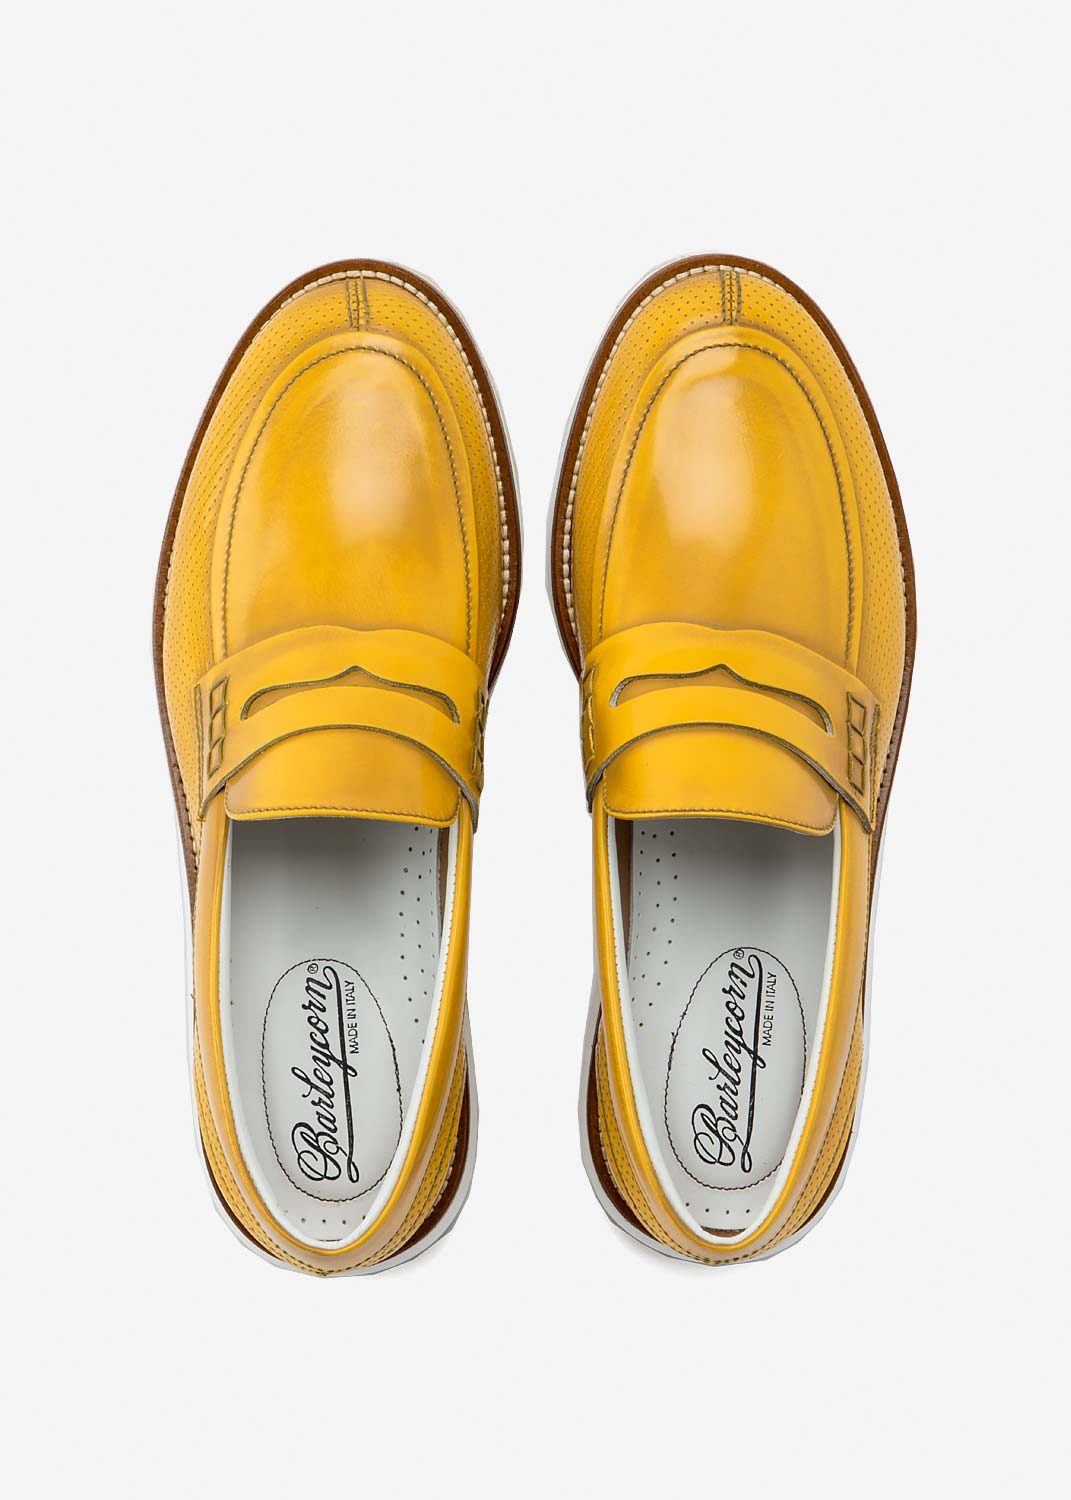 Air Mocassin Yellow Leather